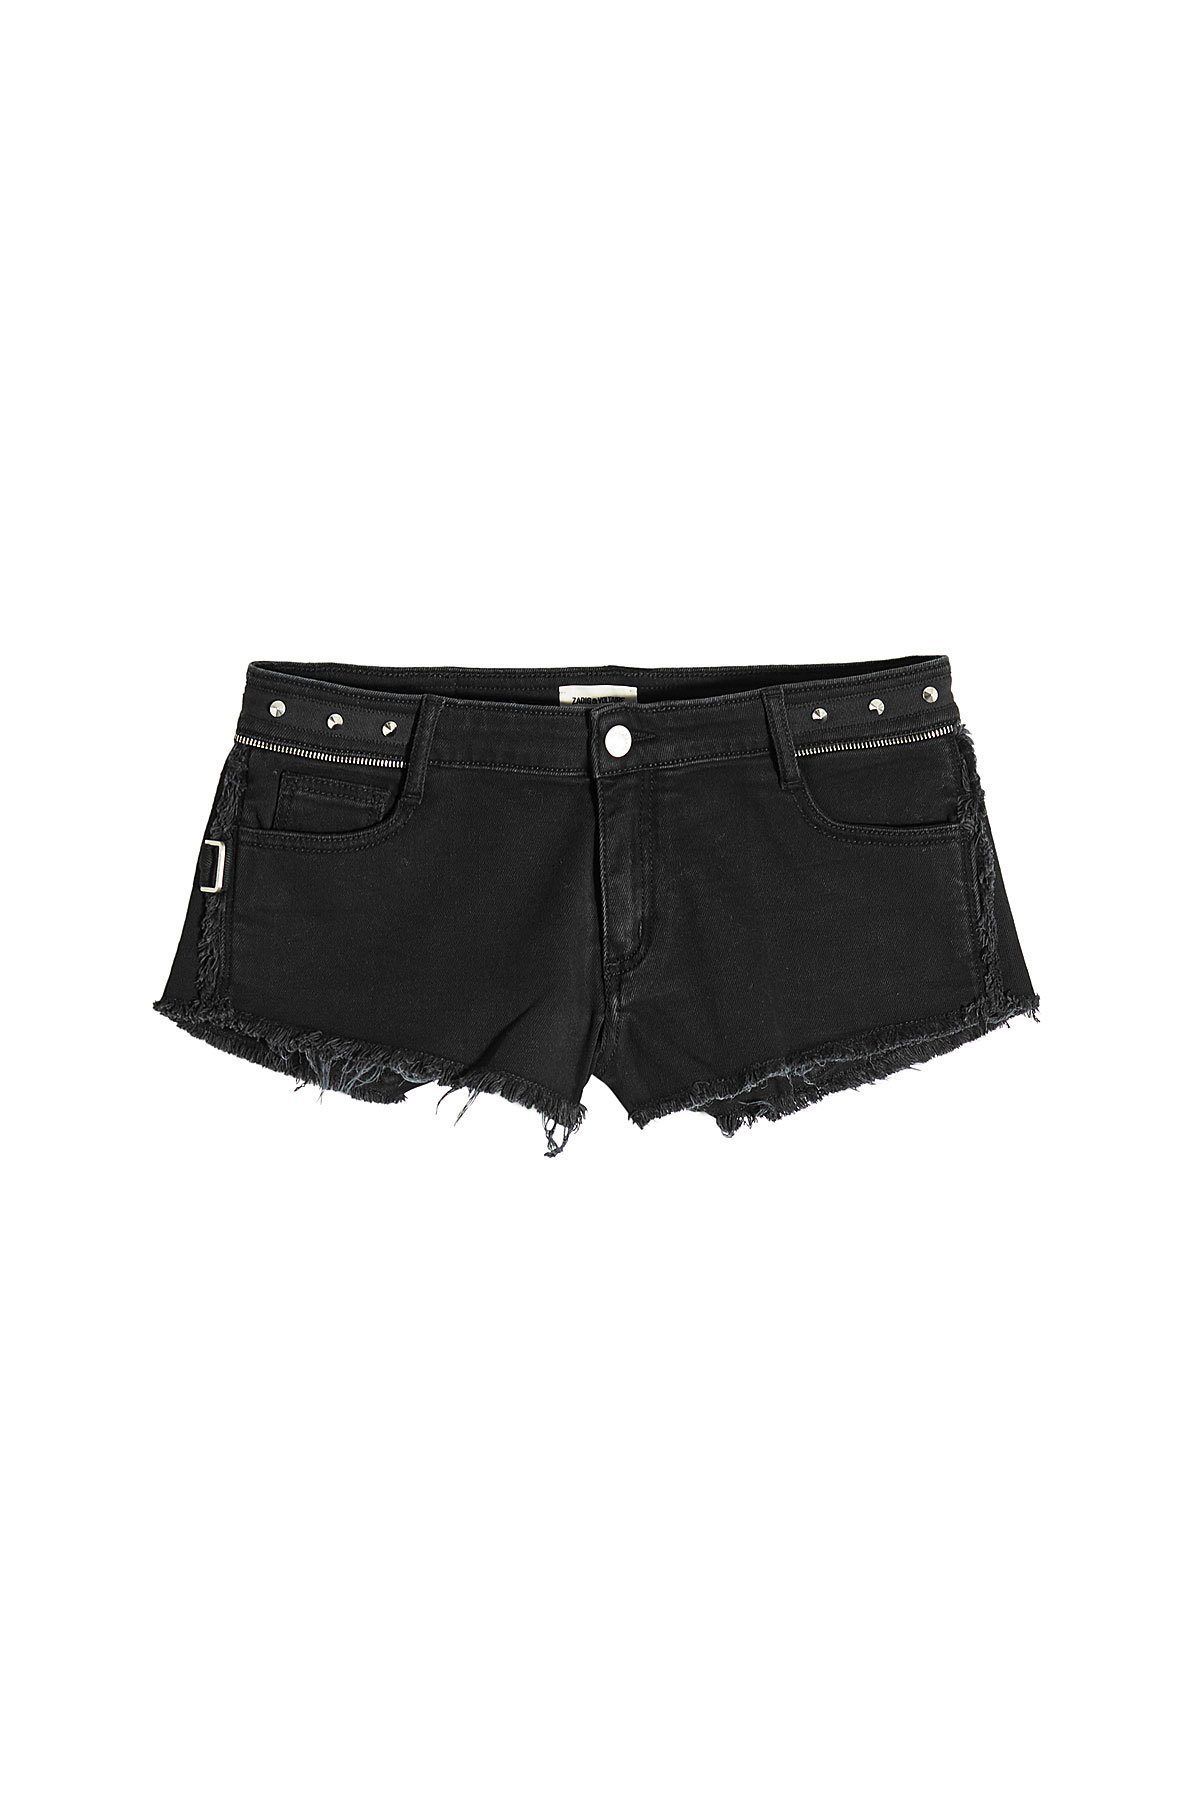 Paly Spikes Denim Cut-Offs Gr. FR 38